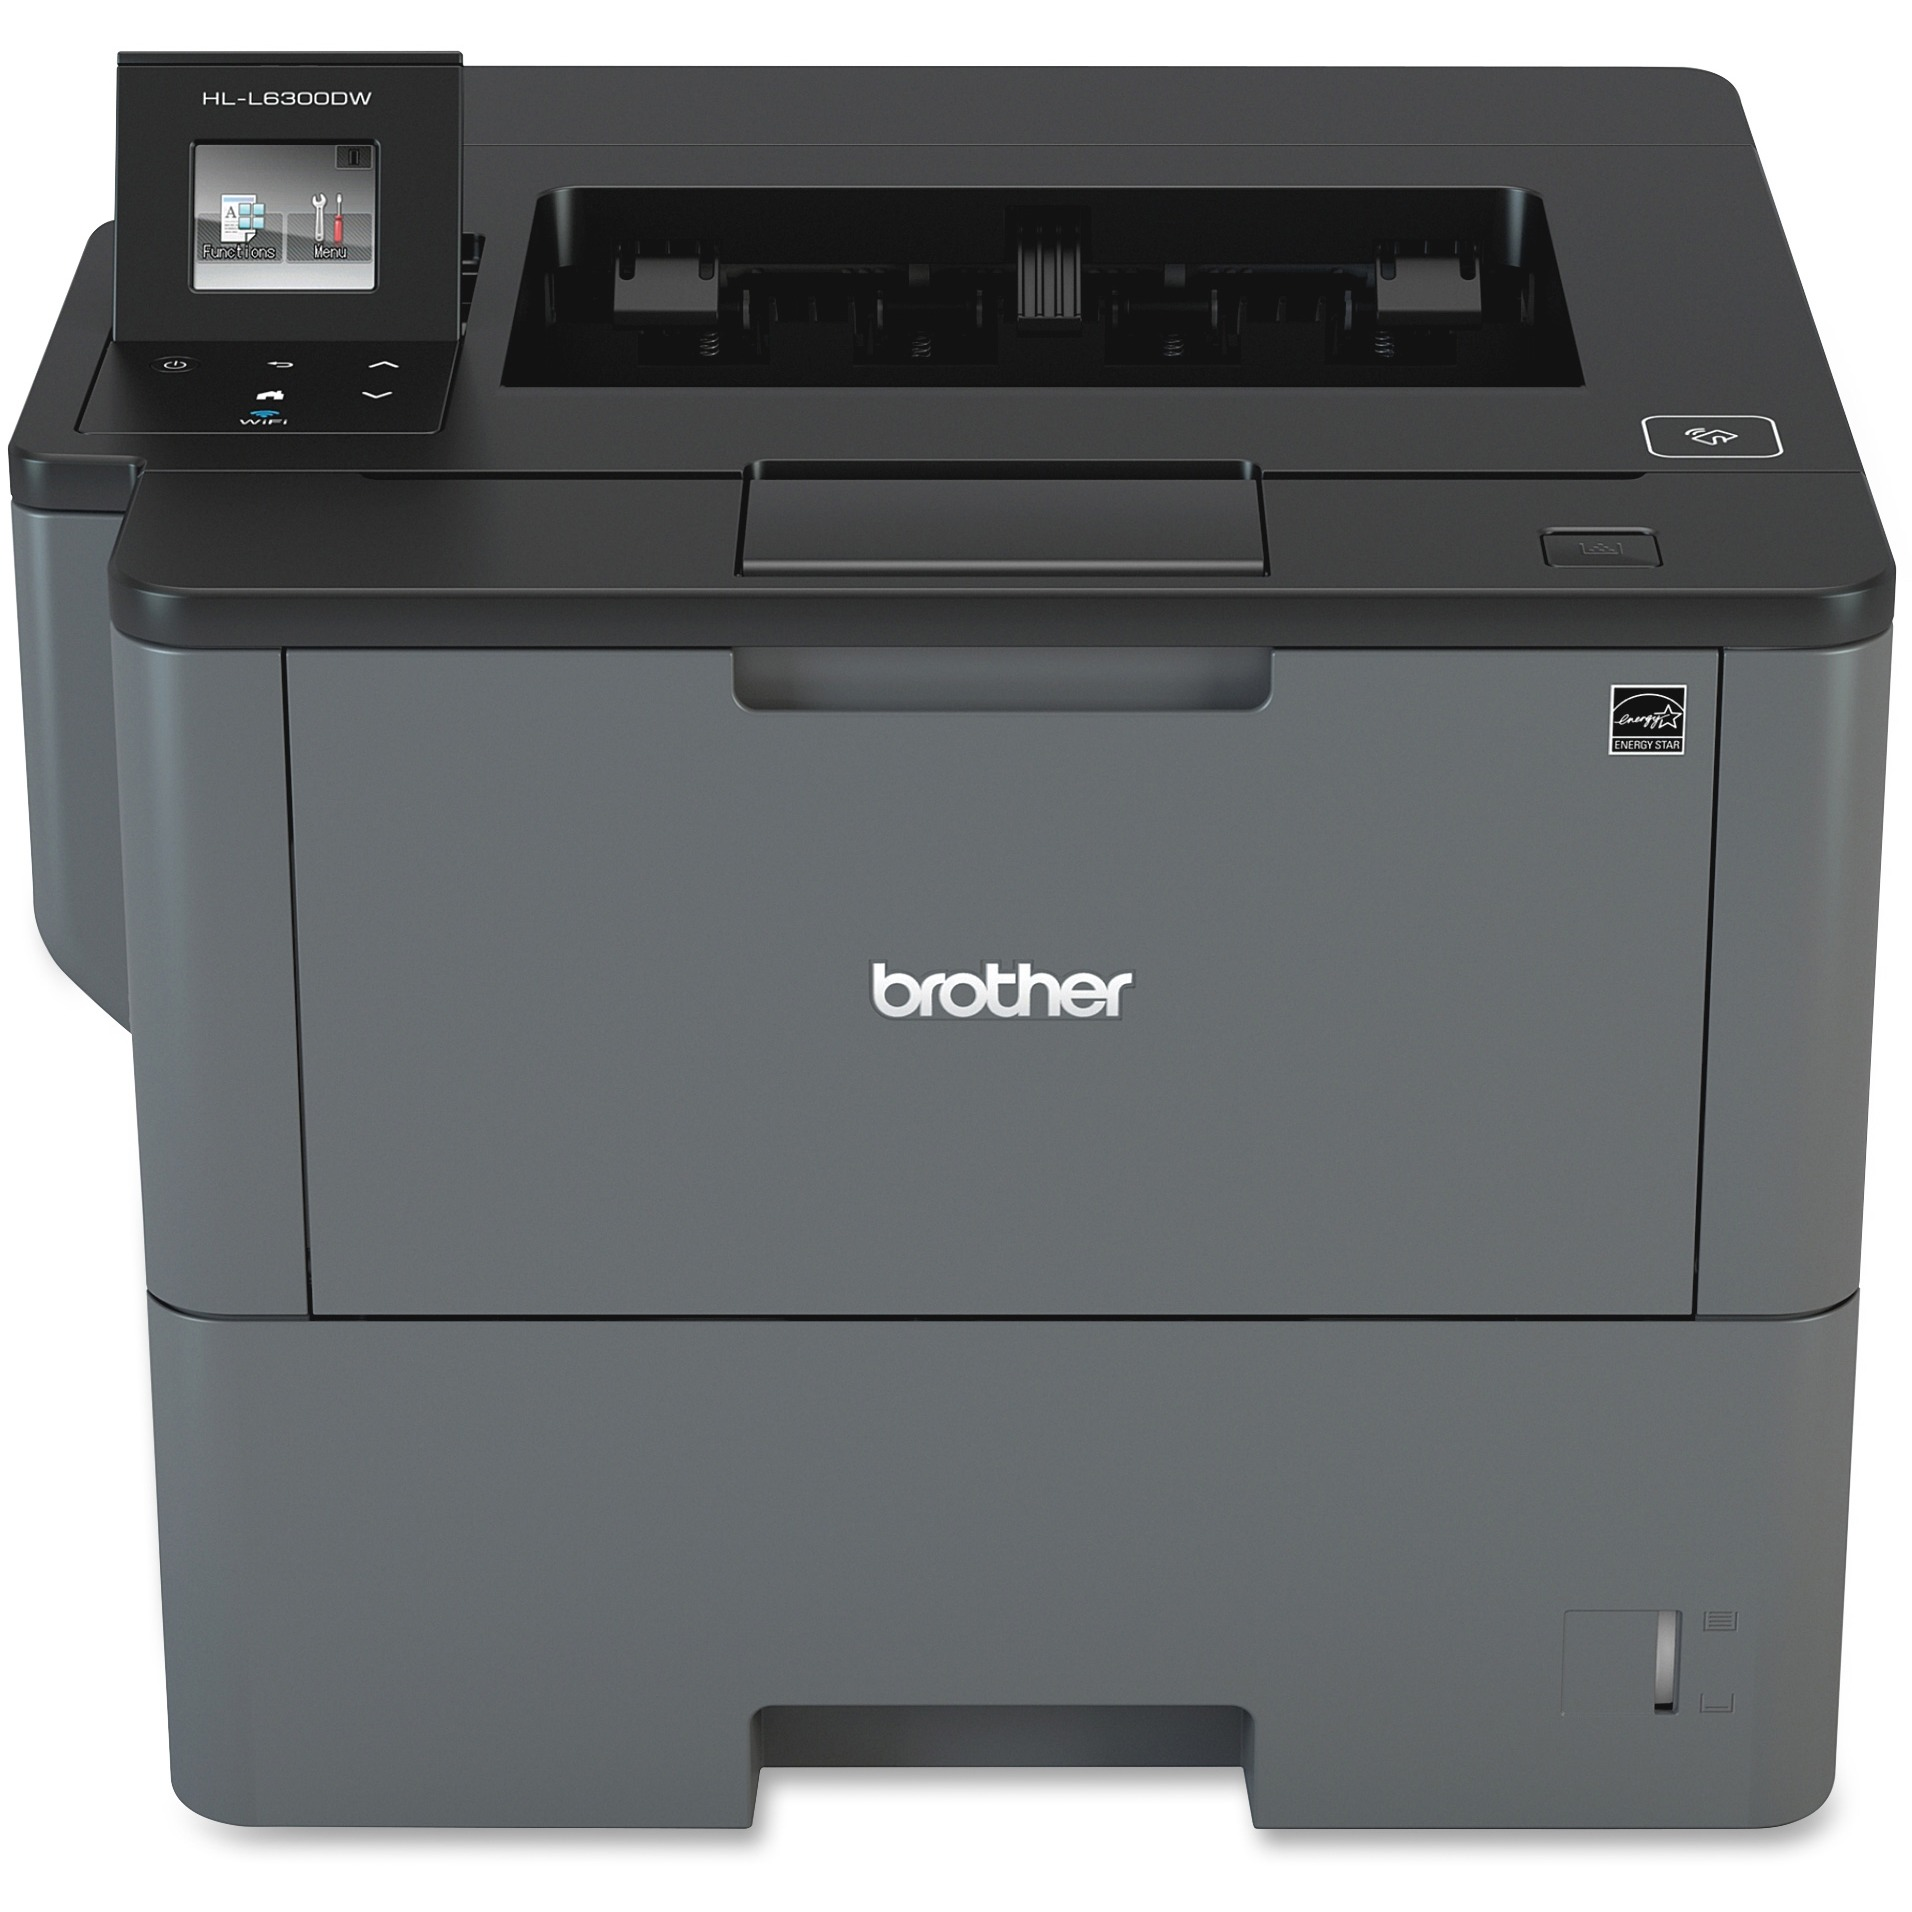 Brother HL-L6300DW Monochrome Laser Printer by Brother